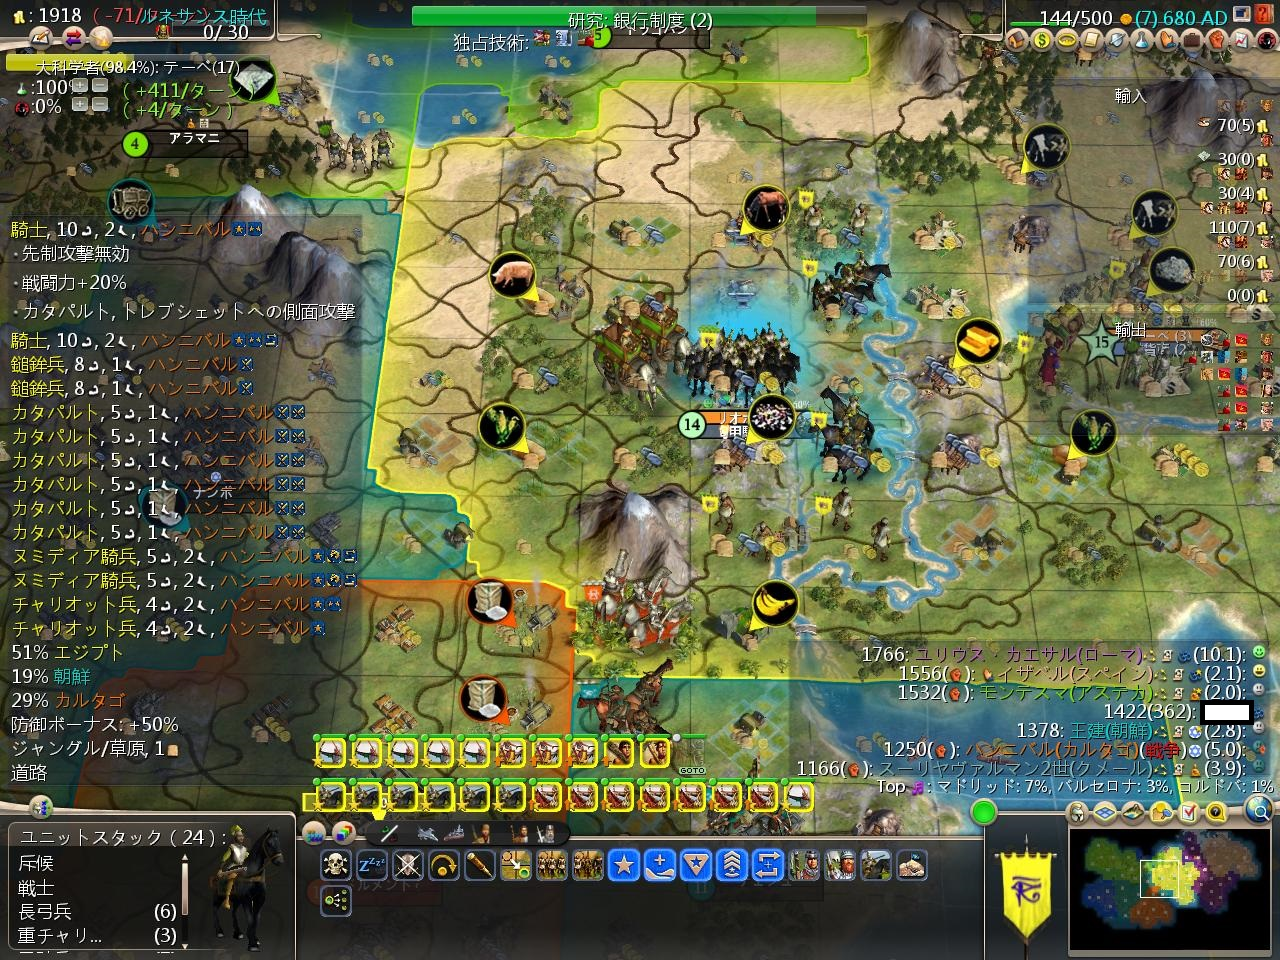 Civ4ScreenShot2142.JPG